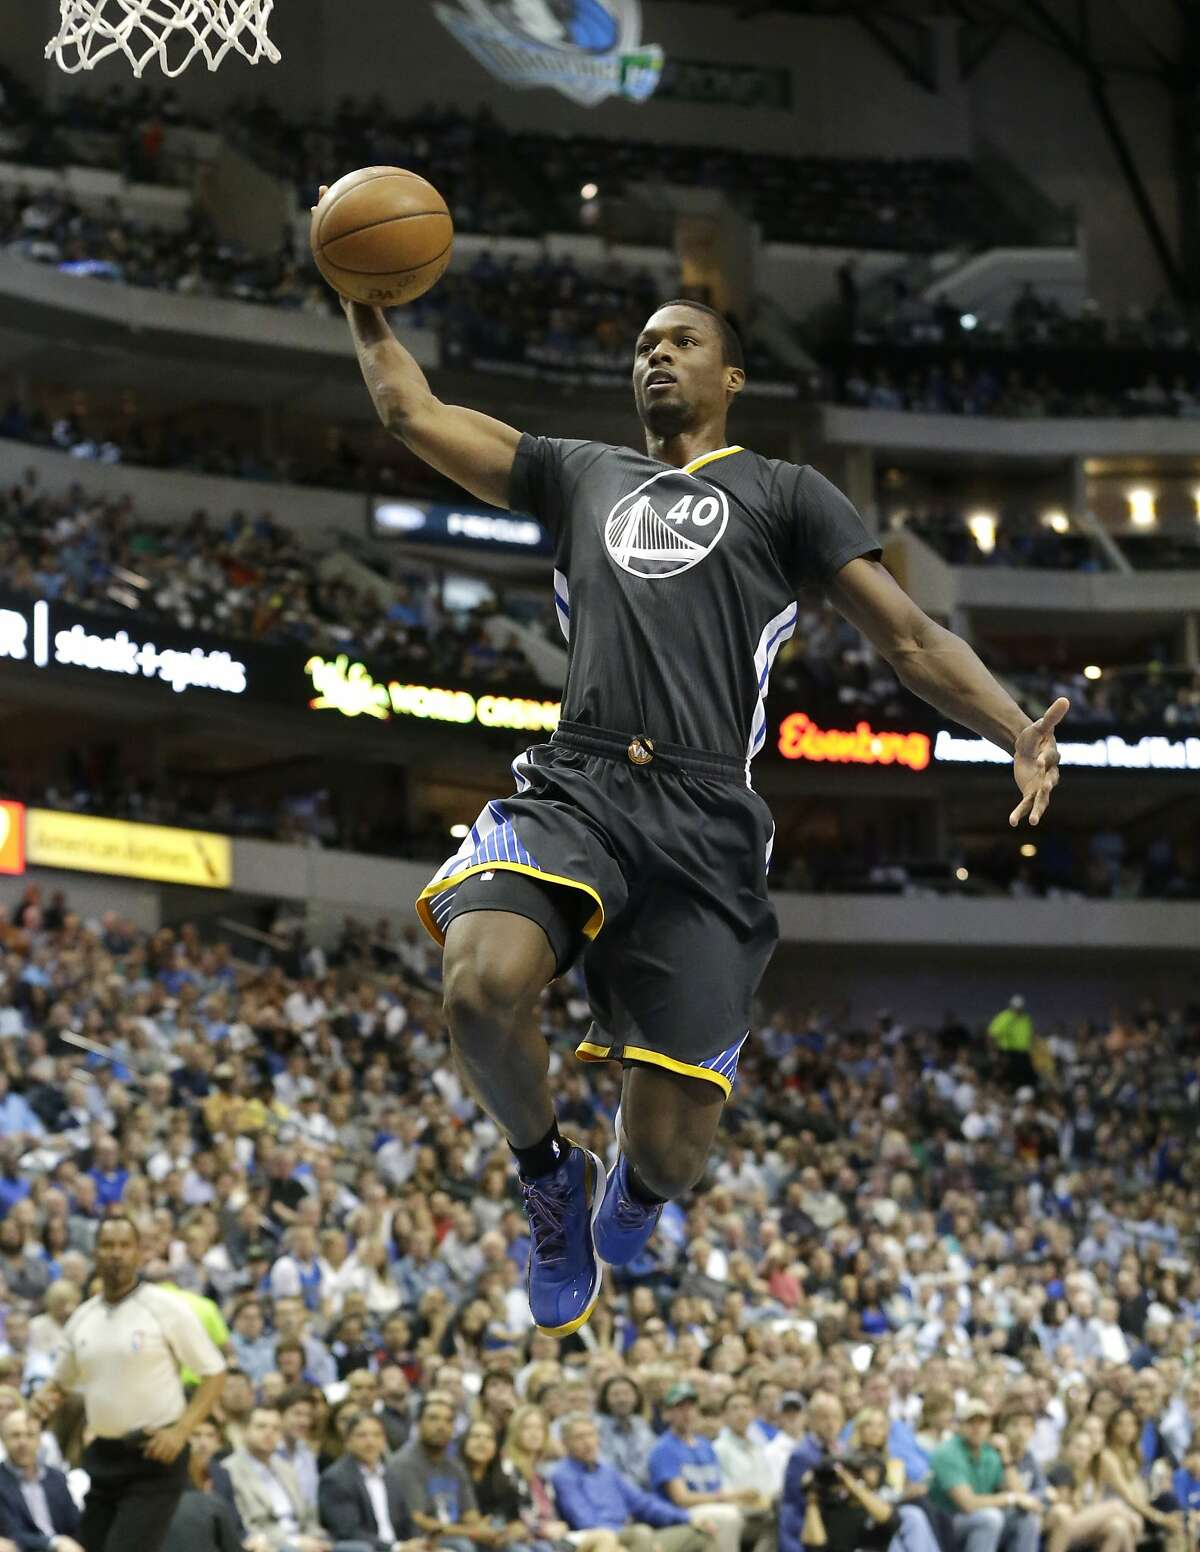 Golden State Warriors forward Harrison Barnes slam dunks during the first half of an NBA basketball game against the Dallas Mavericks Saturday, April 4, 2015, in Dallas. (AP Photo/LM Otero)